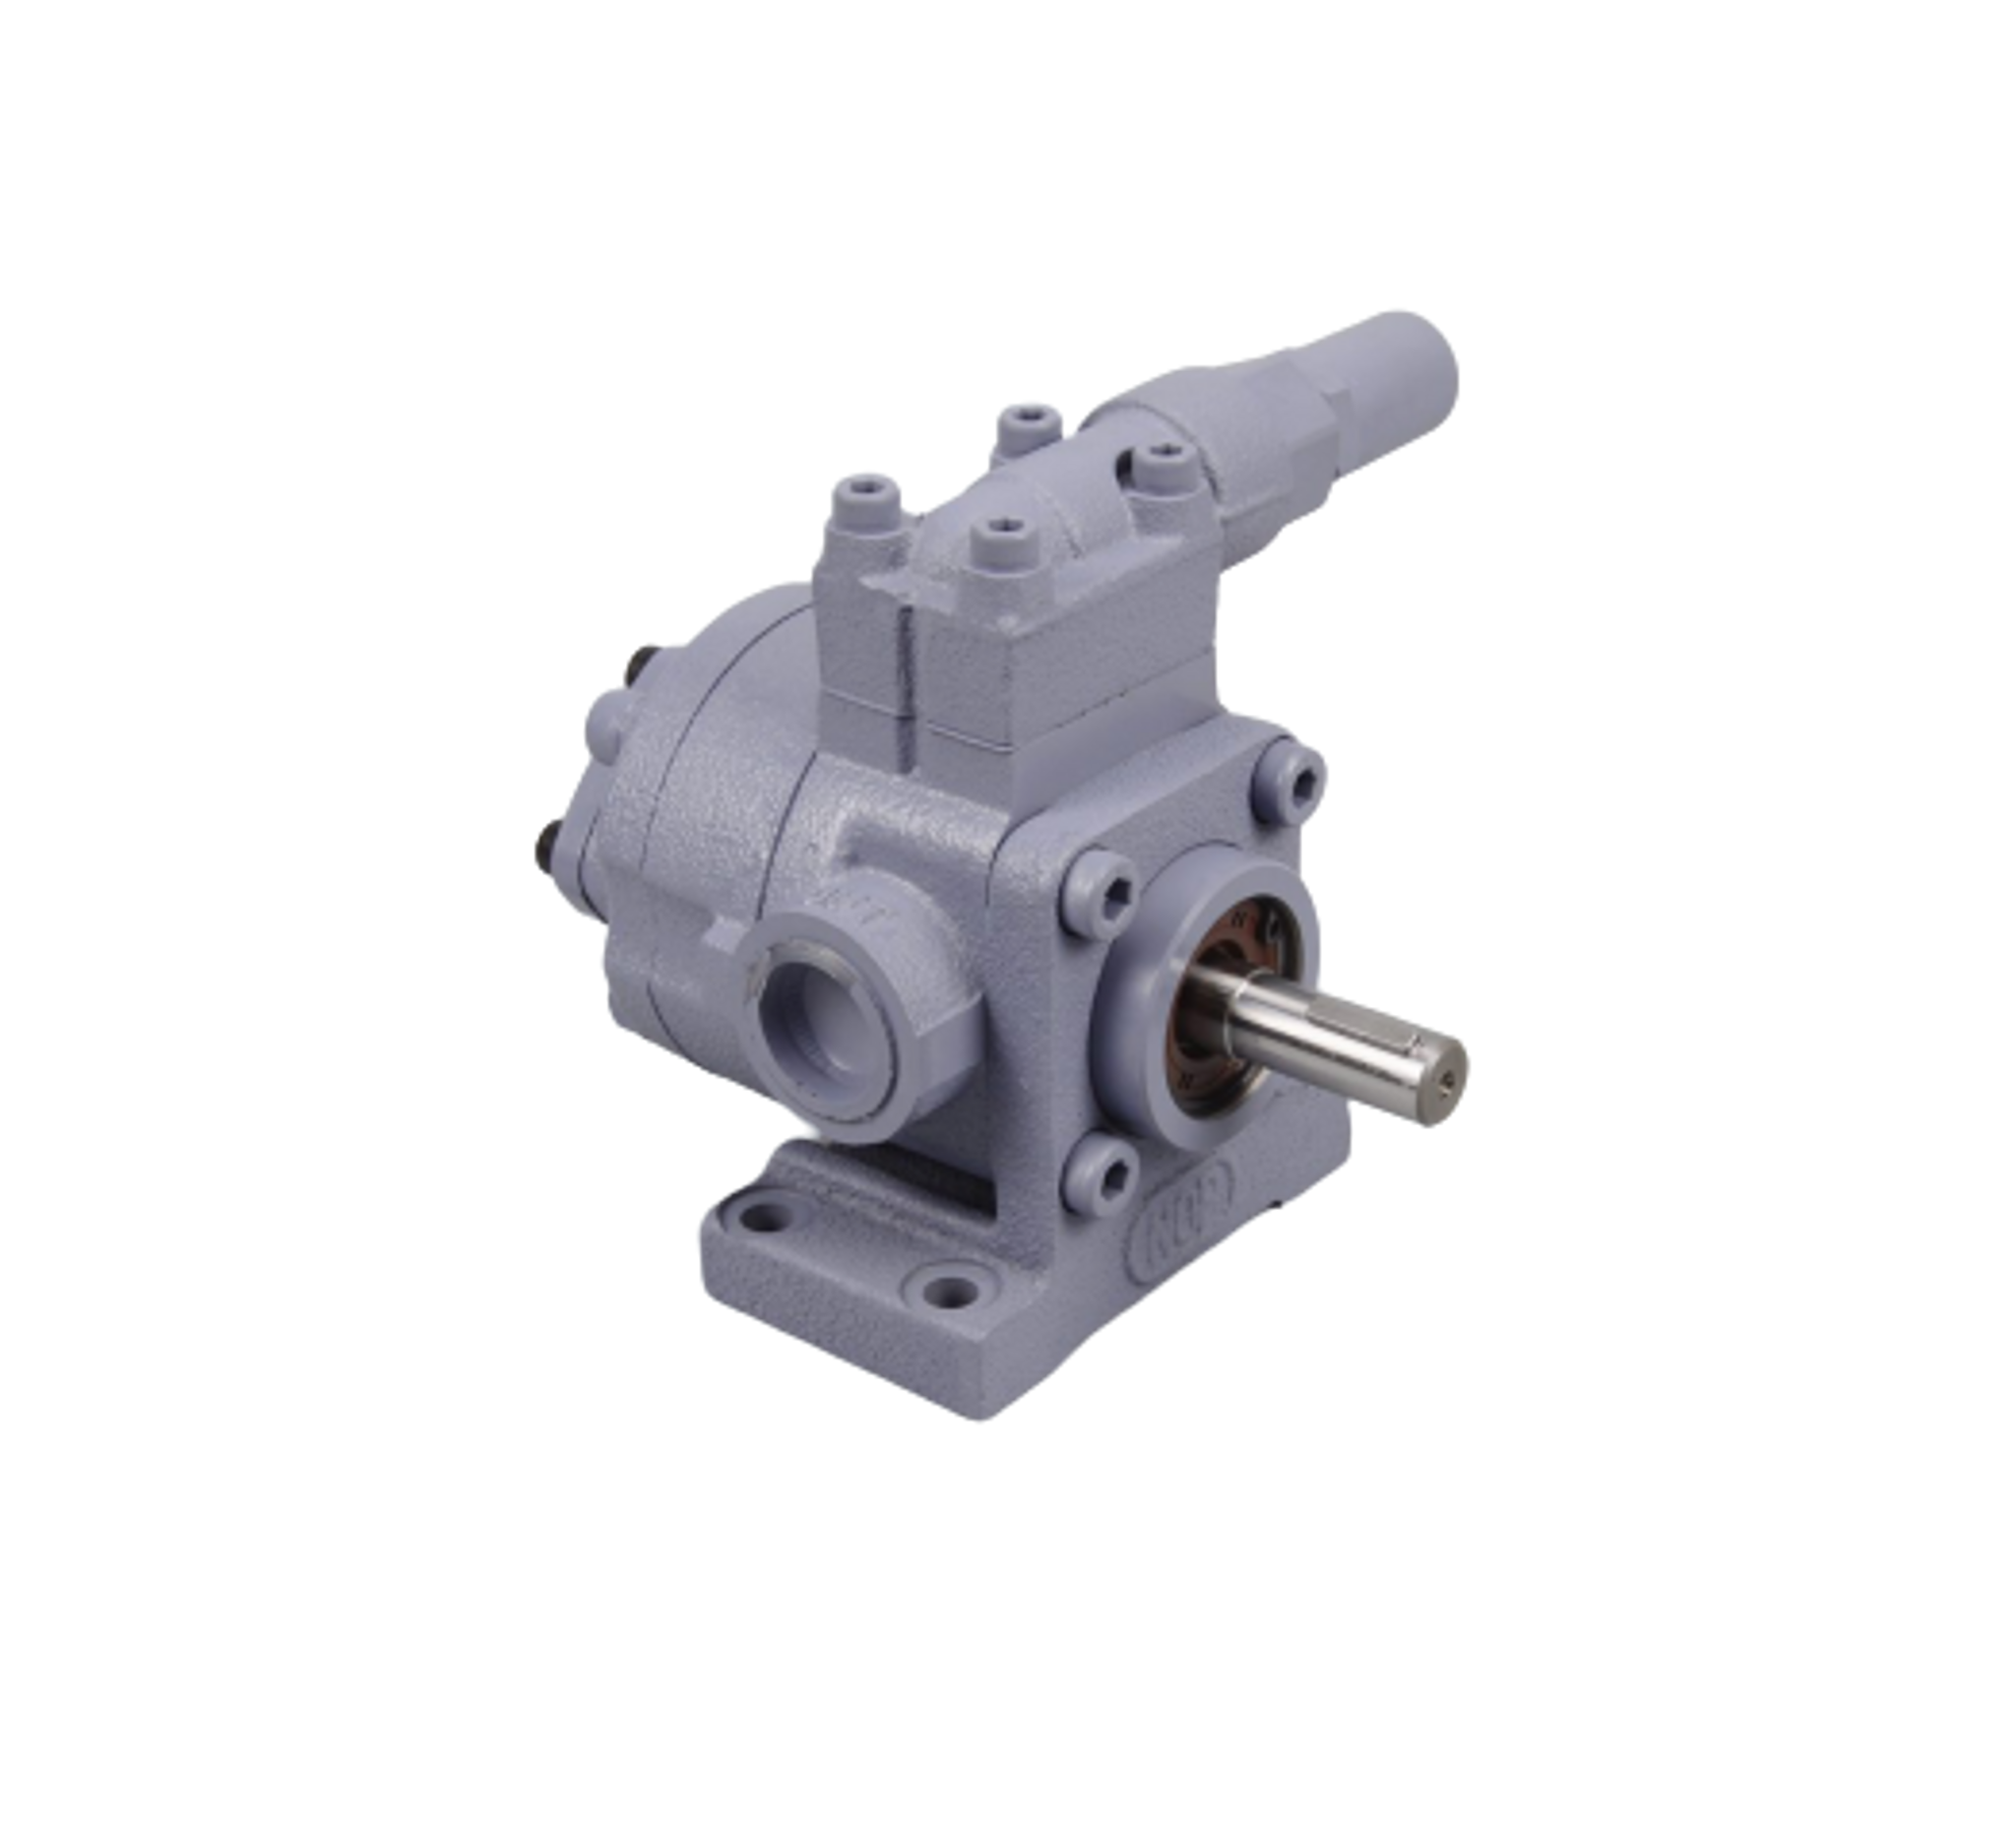 Oil pump and water pump